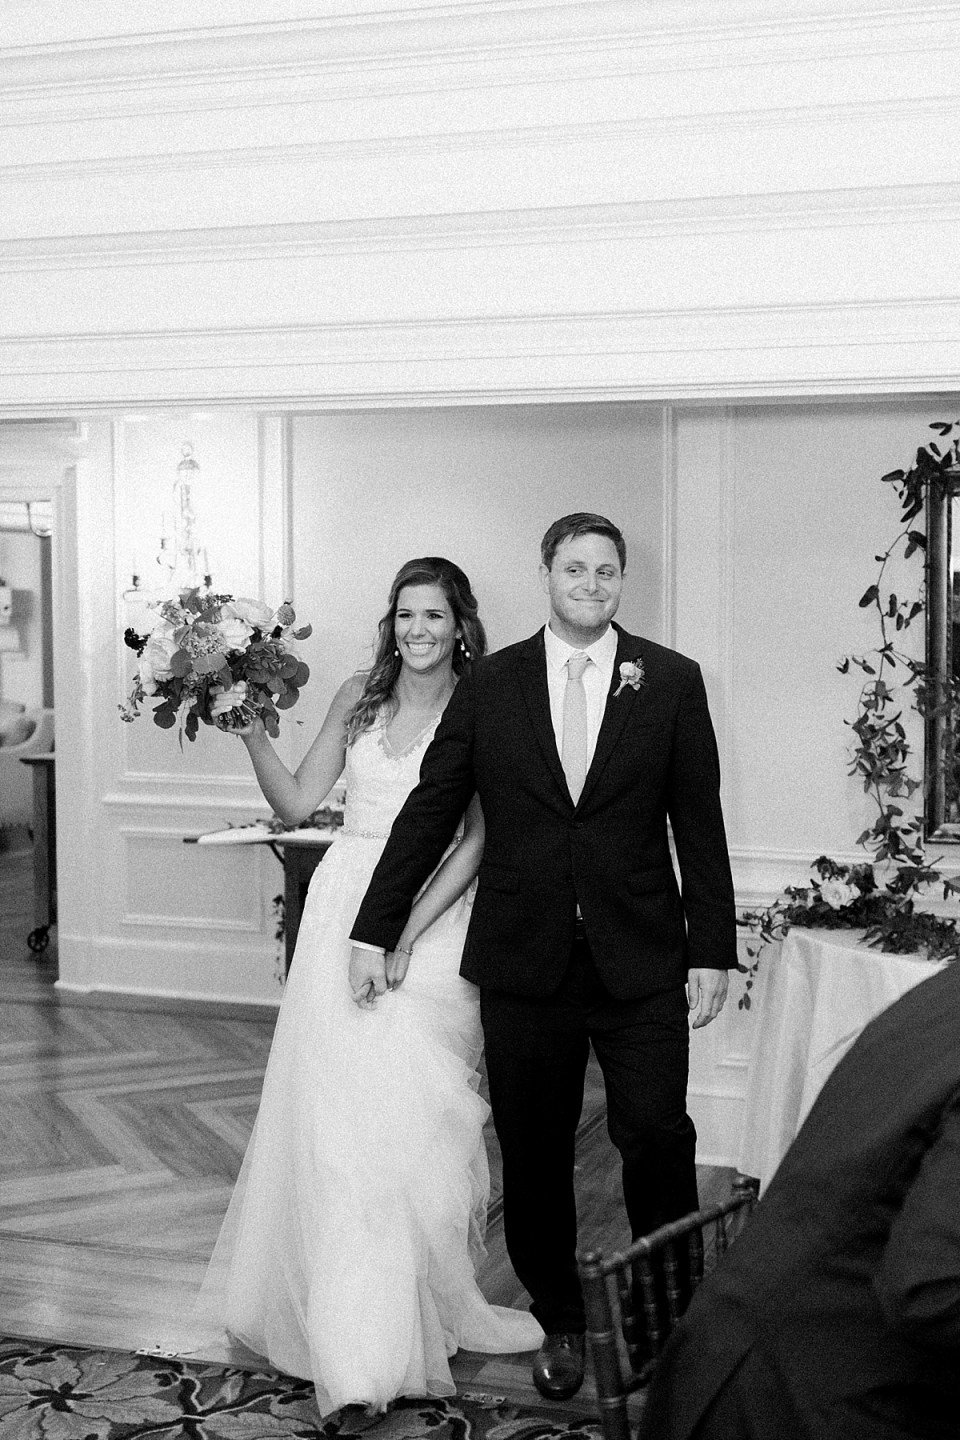 Arielle Peters Photography | Bride and groom entering wedding reception at Sycamore Hills Golf Club in Fort Wayne, Indiana on wedding day.